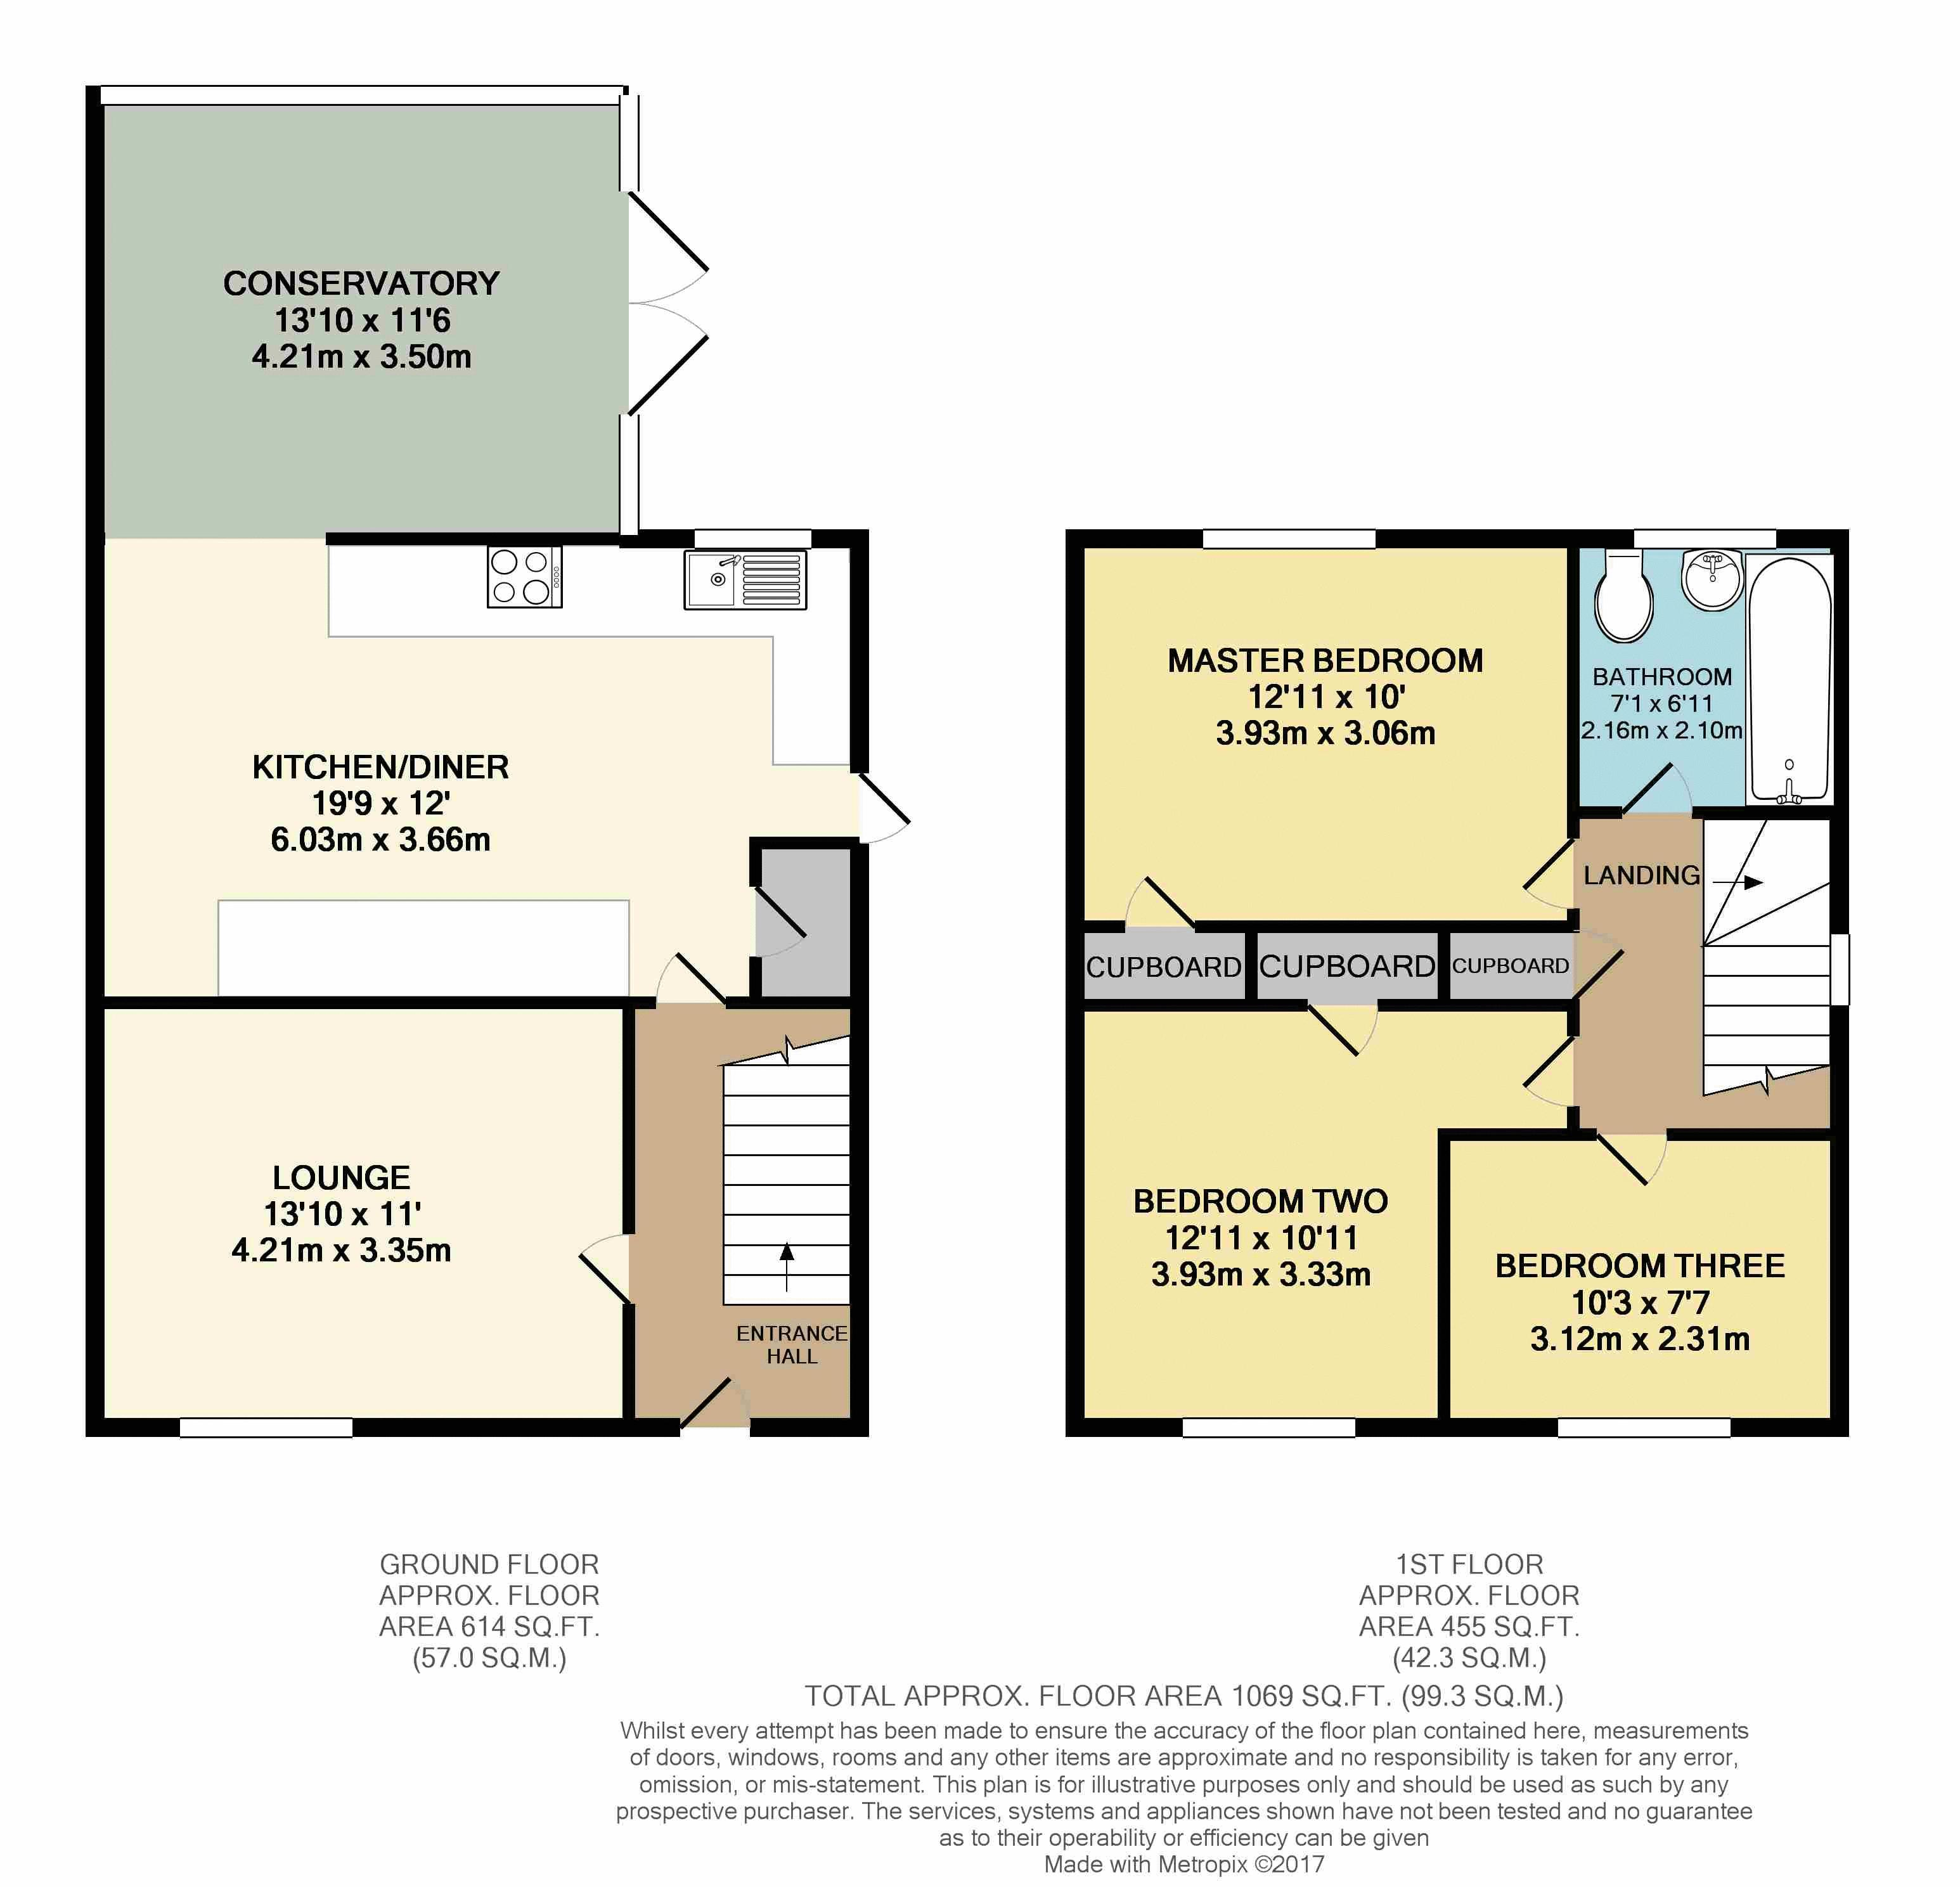 3 bedroom house for sale in milton keynes for How much is a bathroom worth on an appraisal